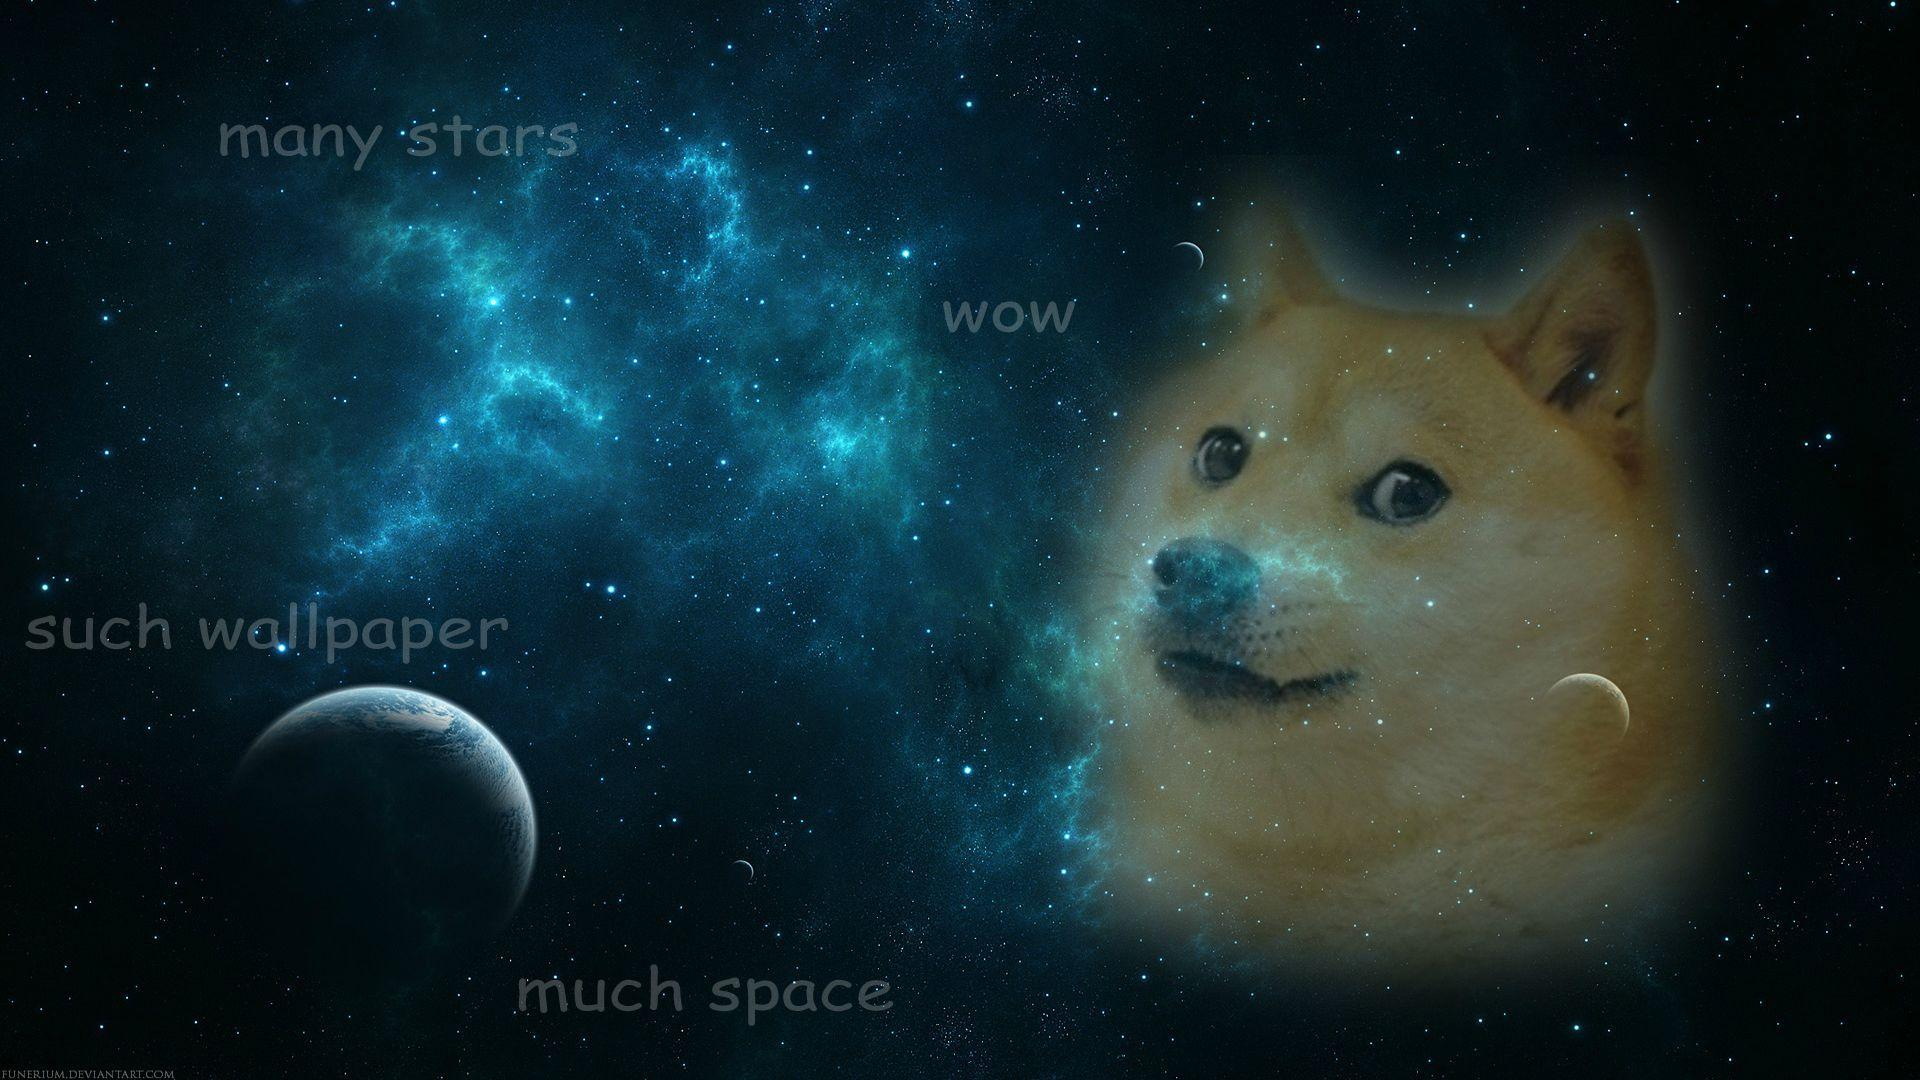 Doge Wallpapers Wallpaper Cave